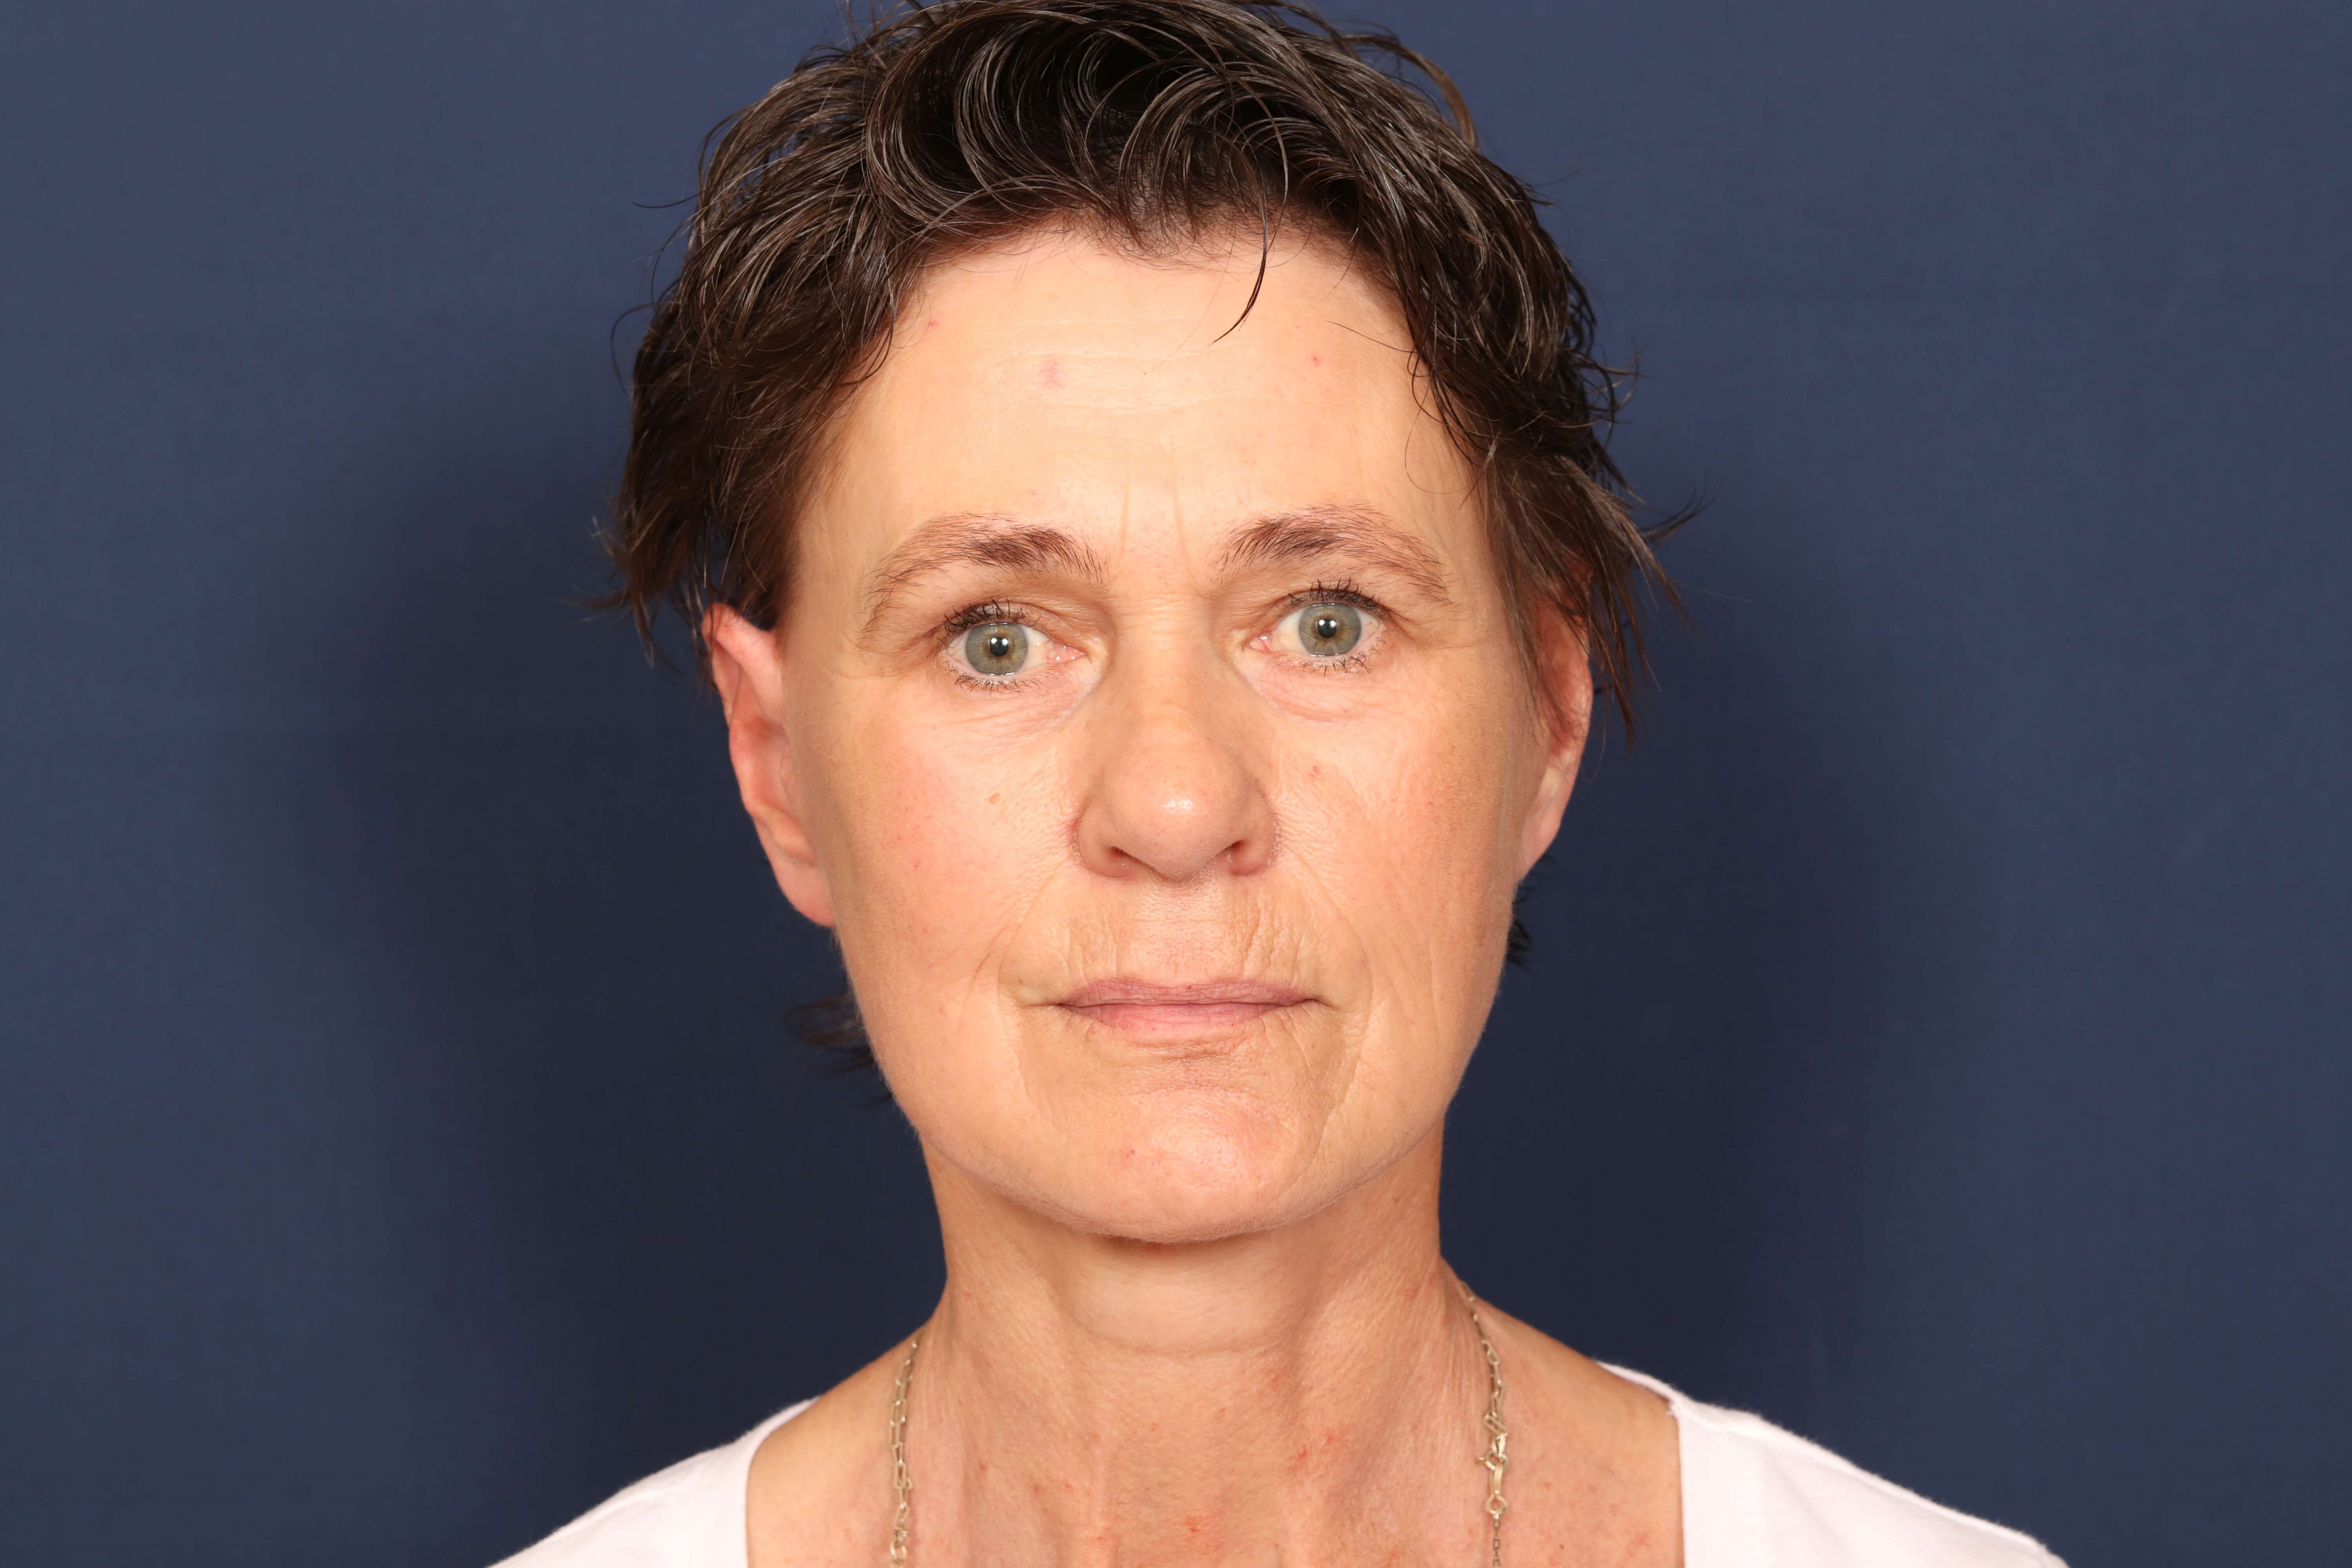 Facelift with Fat Injection After